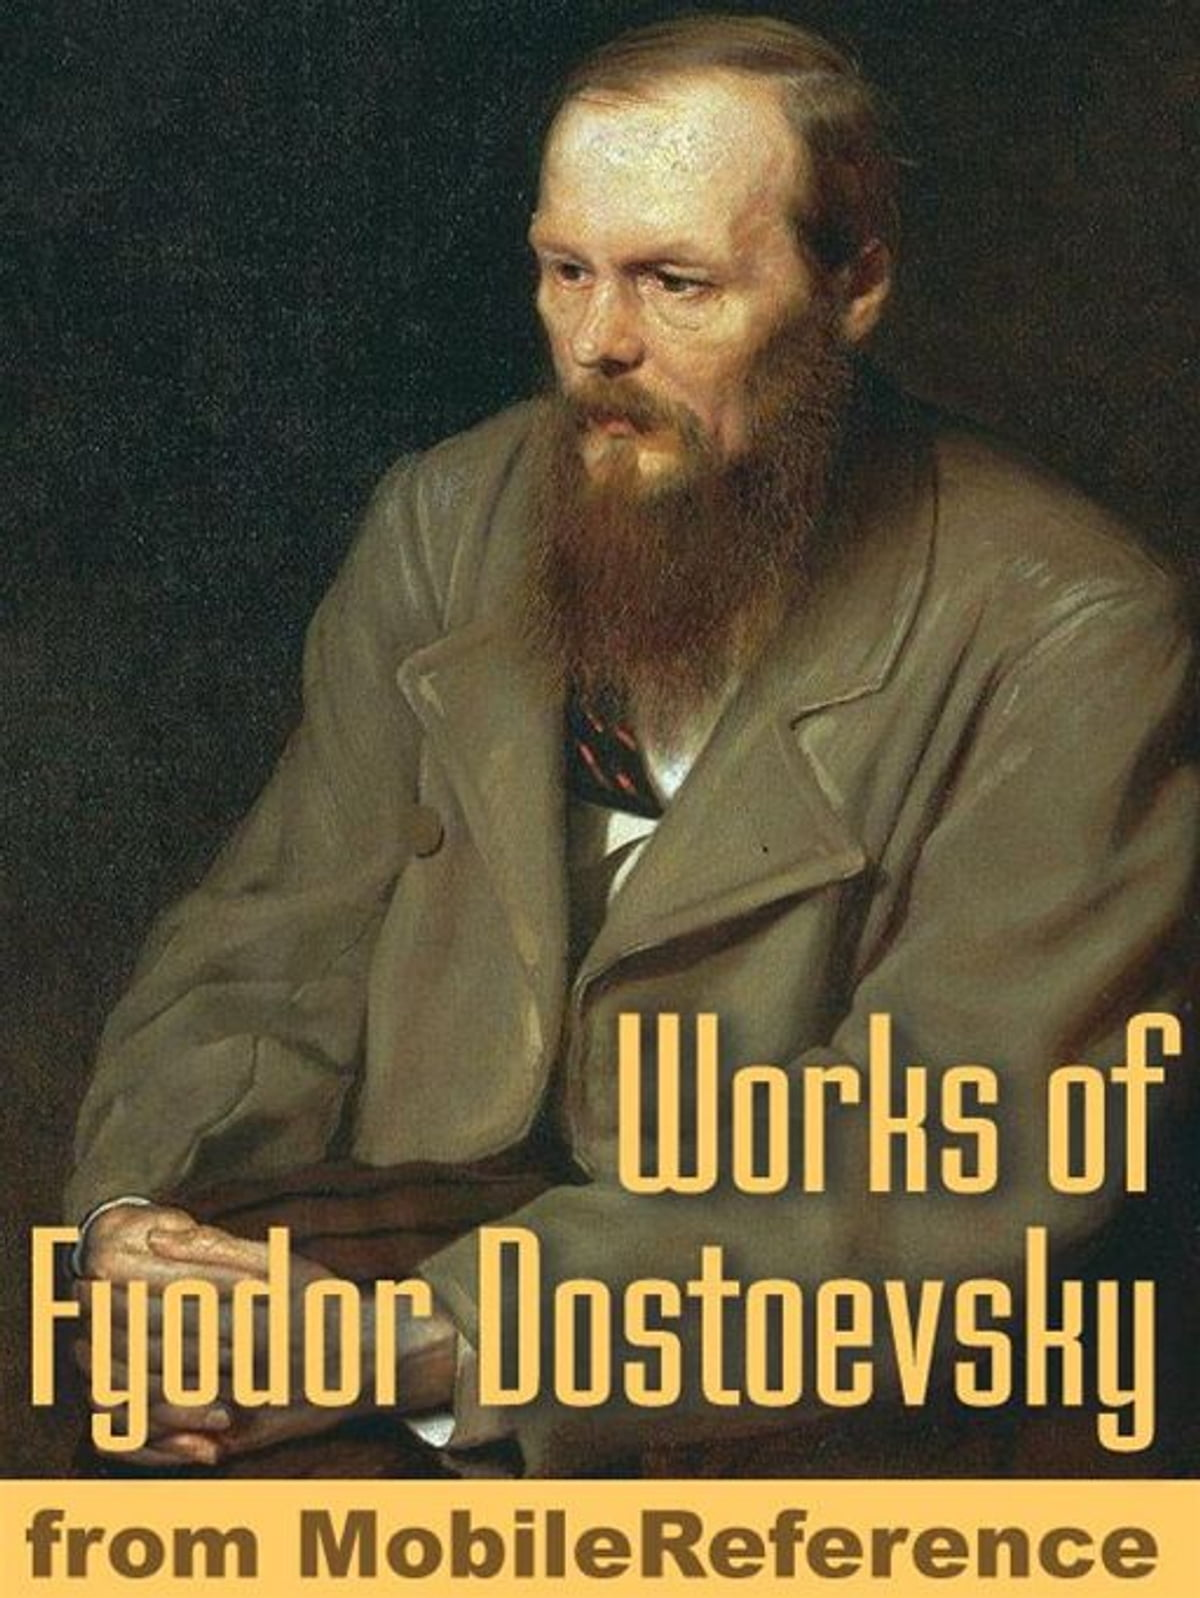 dostoevsky novel the idiot pdf